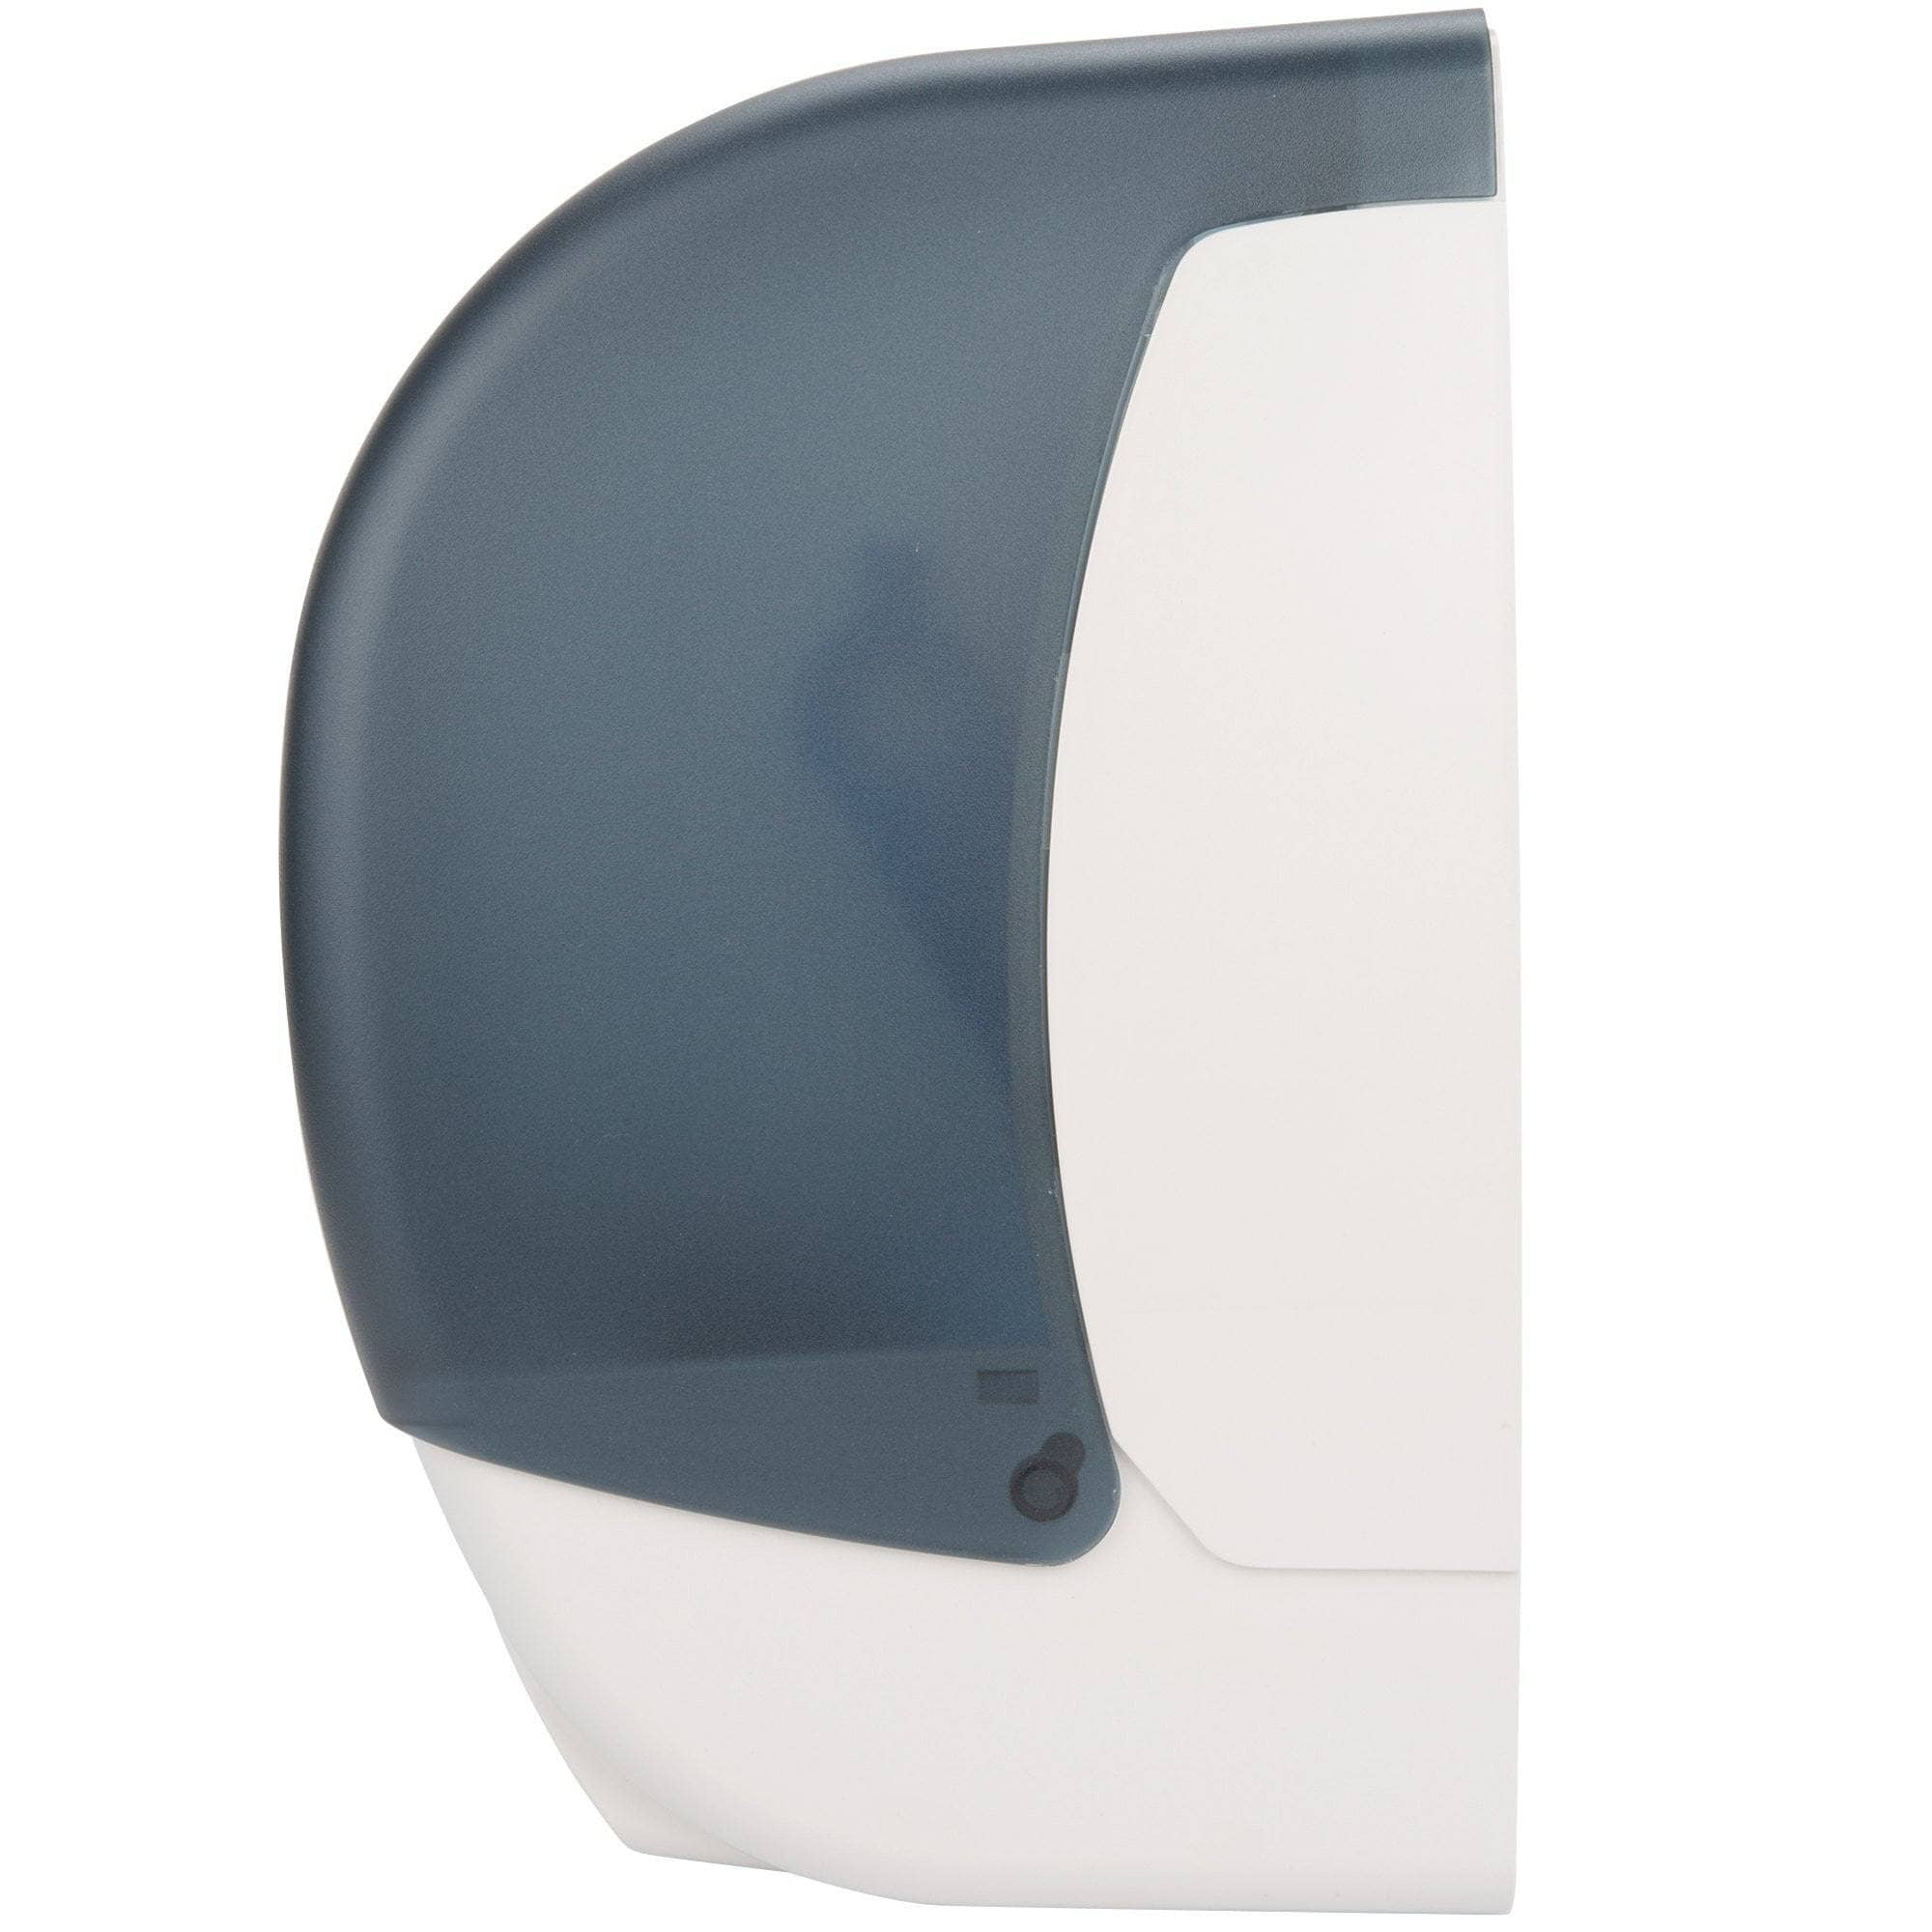 Bobrick B-72974 Automatic Commercial Paper Towel Dispenser, Surface-Mounted, Plastic - TotalRestroom.com